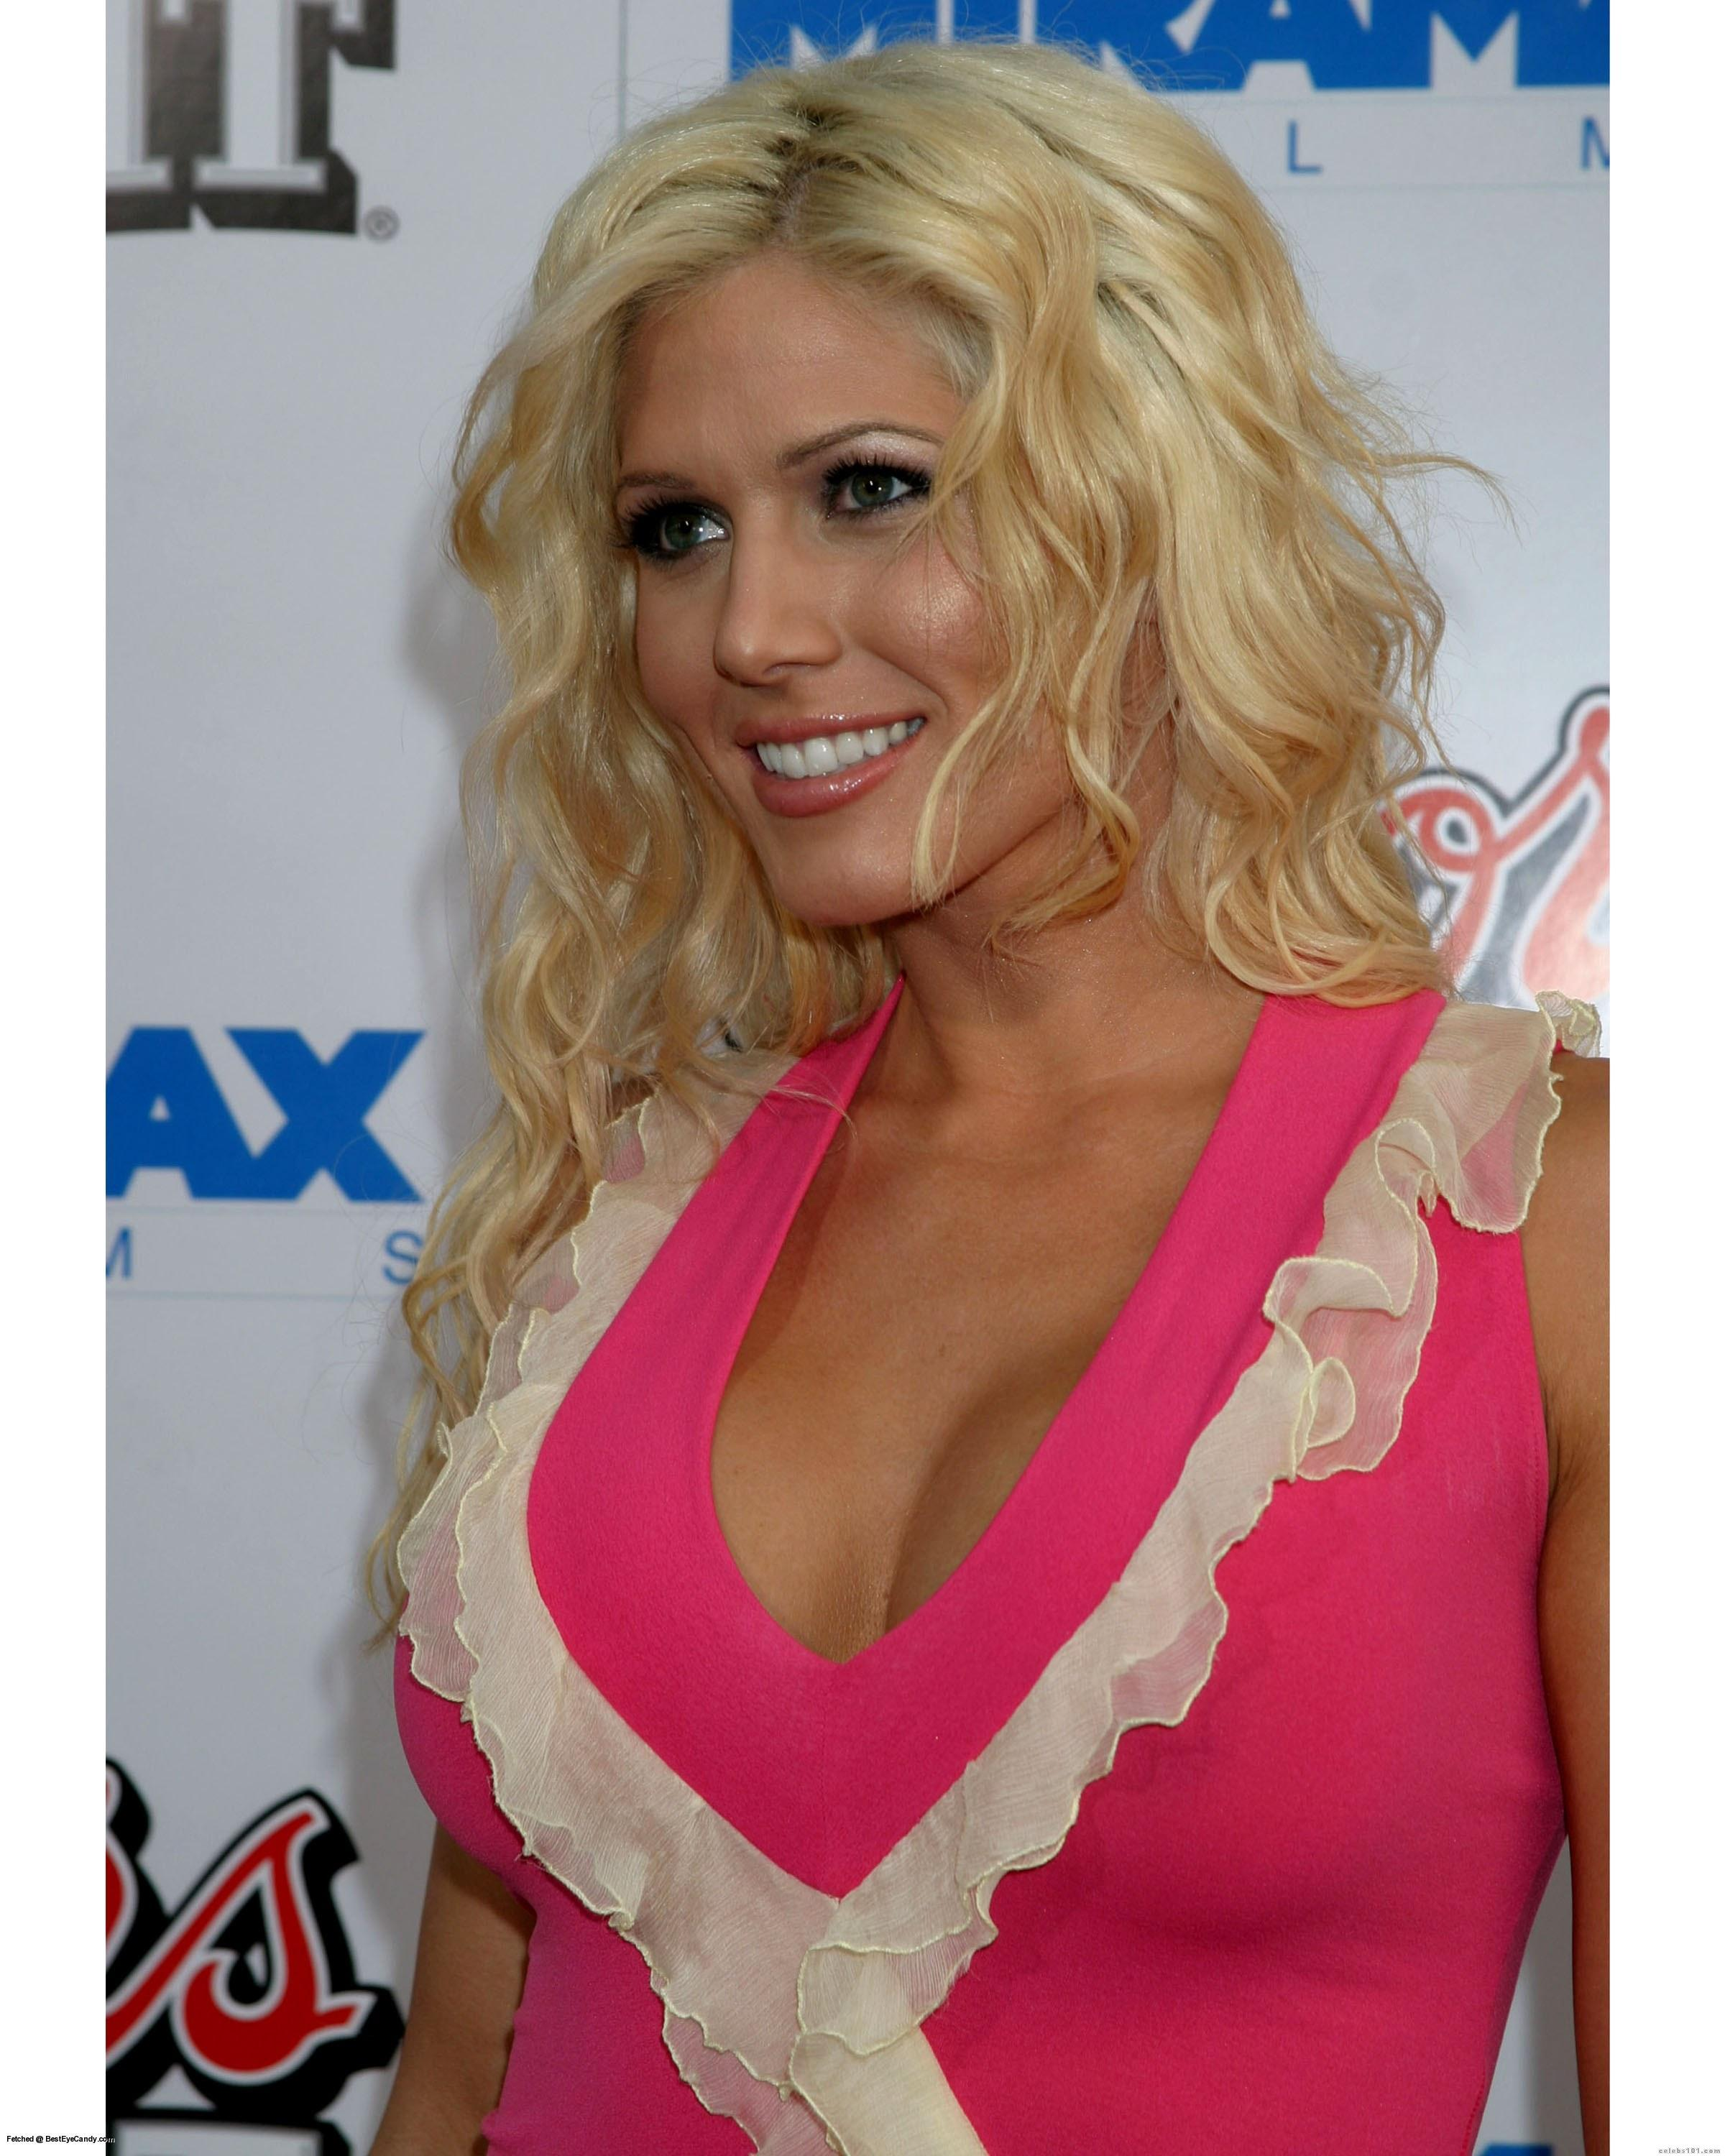 Torrie Wilson - High quality image size 2400x3000 of Torrie Wilson Picture